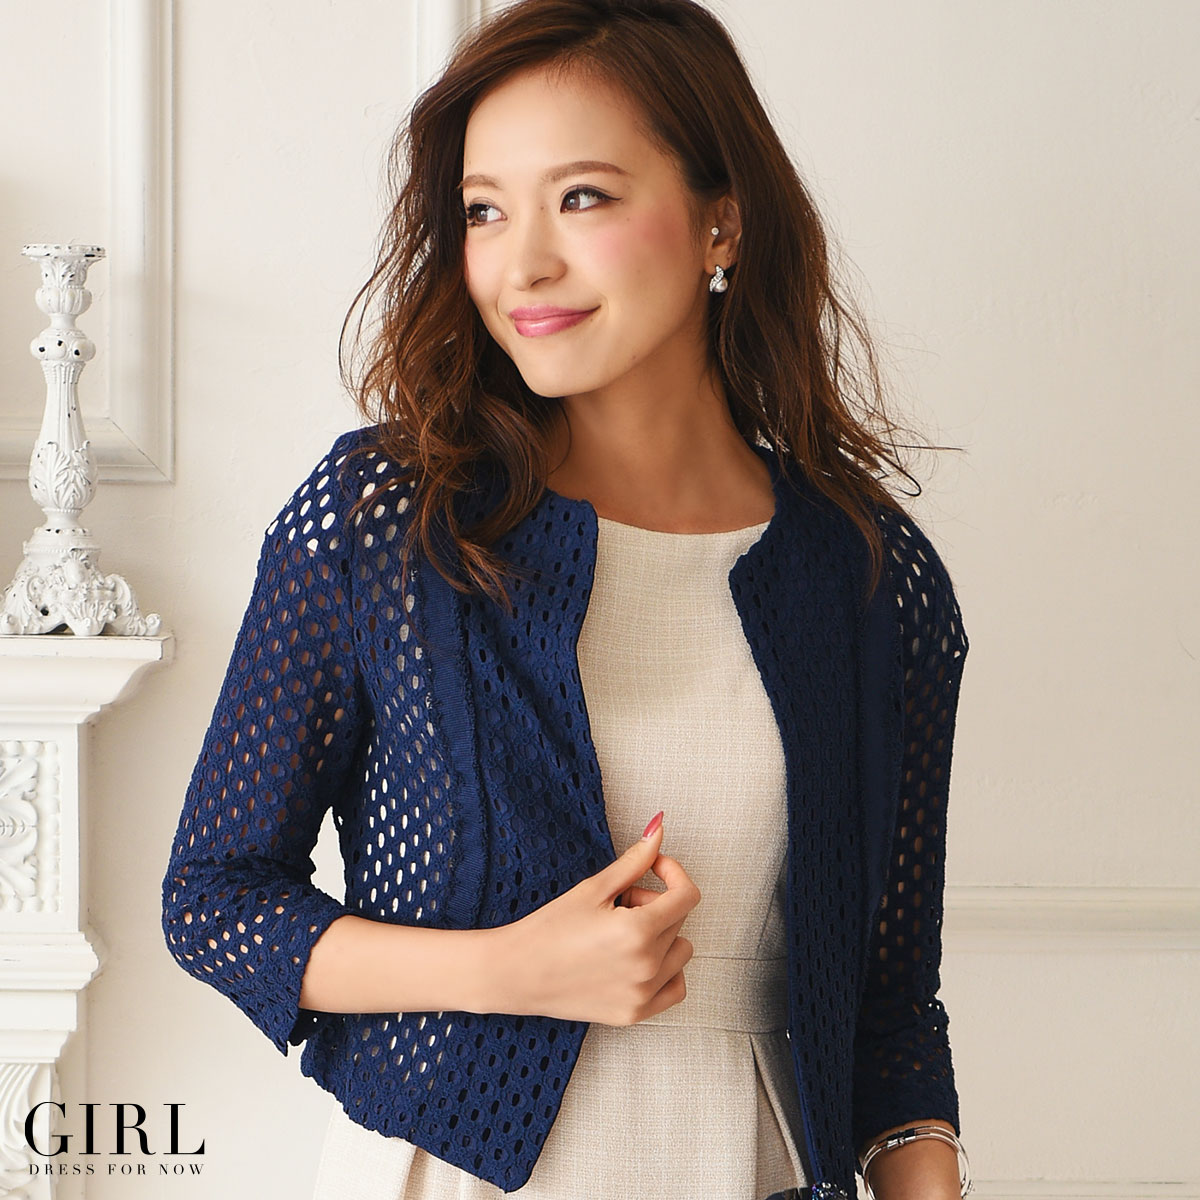 Dress Shop Girl Bolero Jacket Wedding Invited Ladies Special